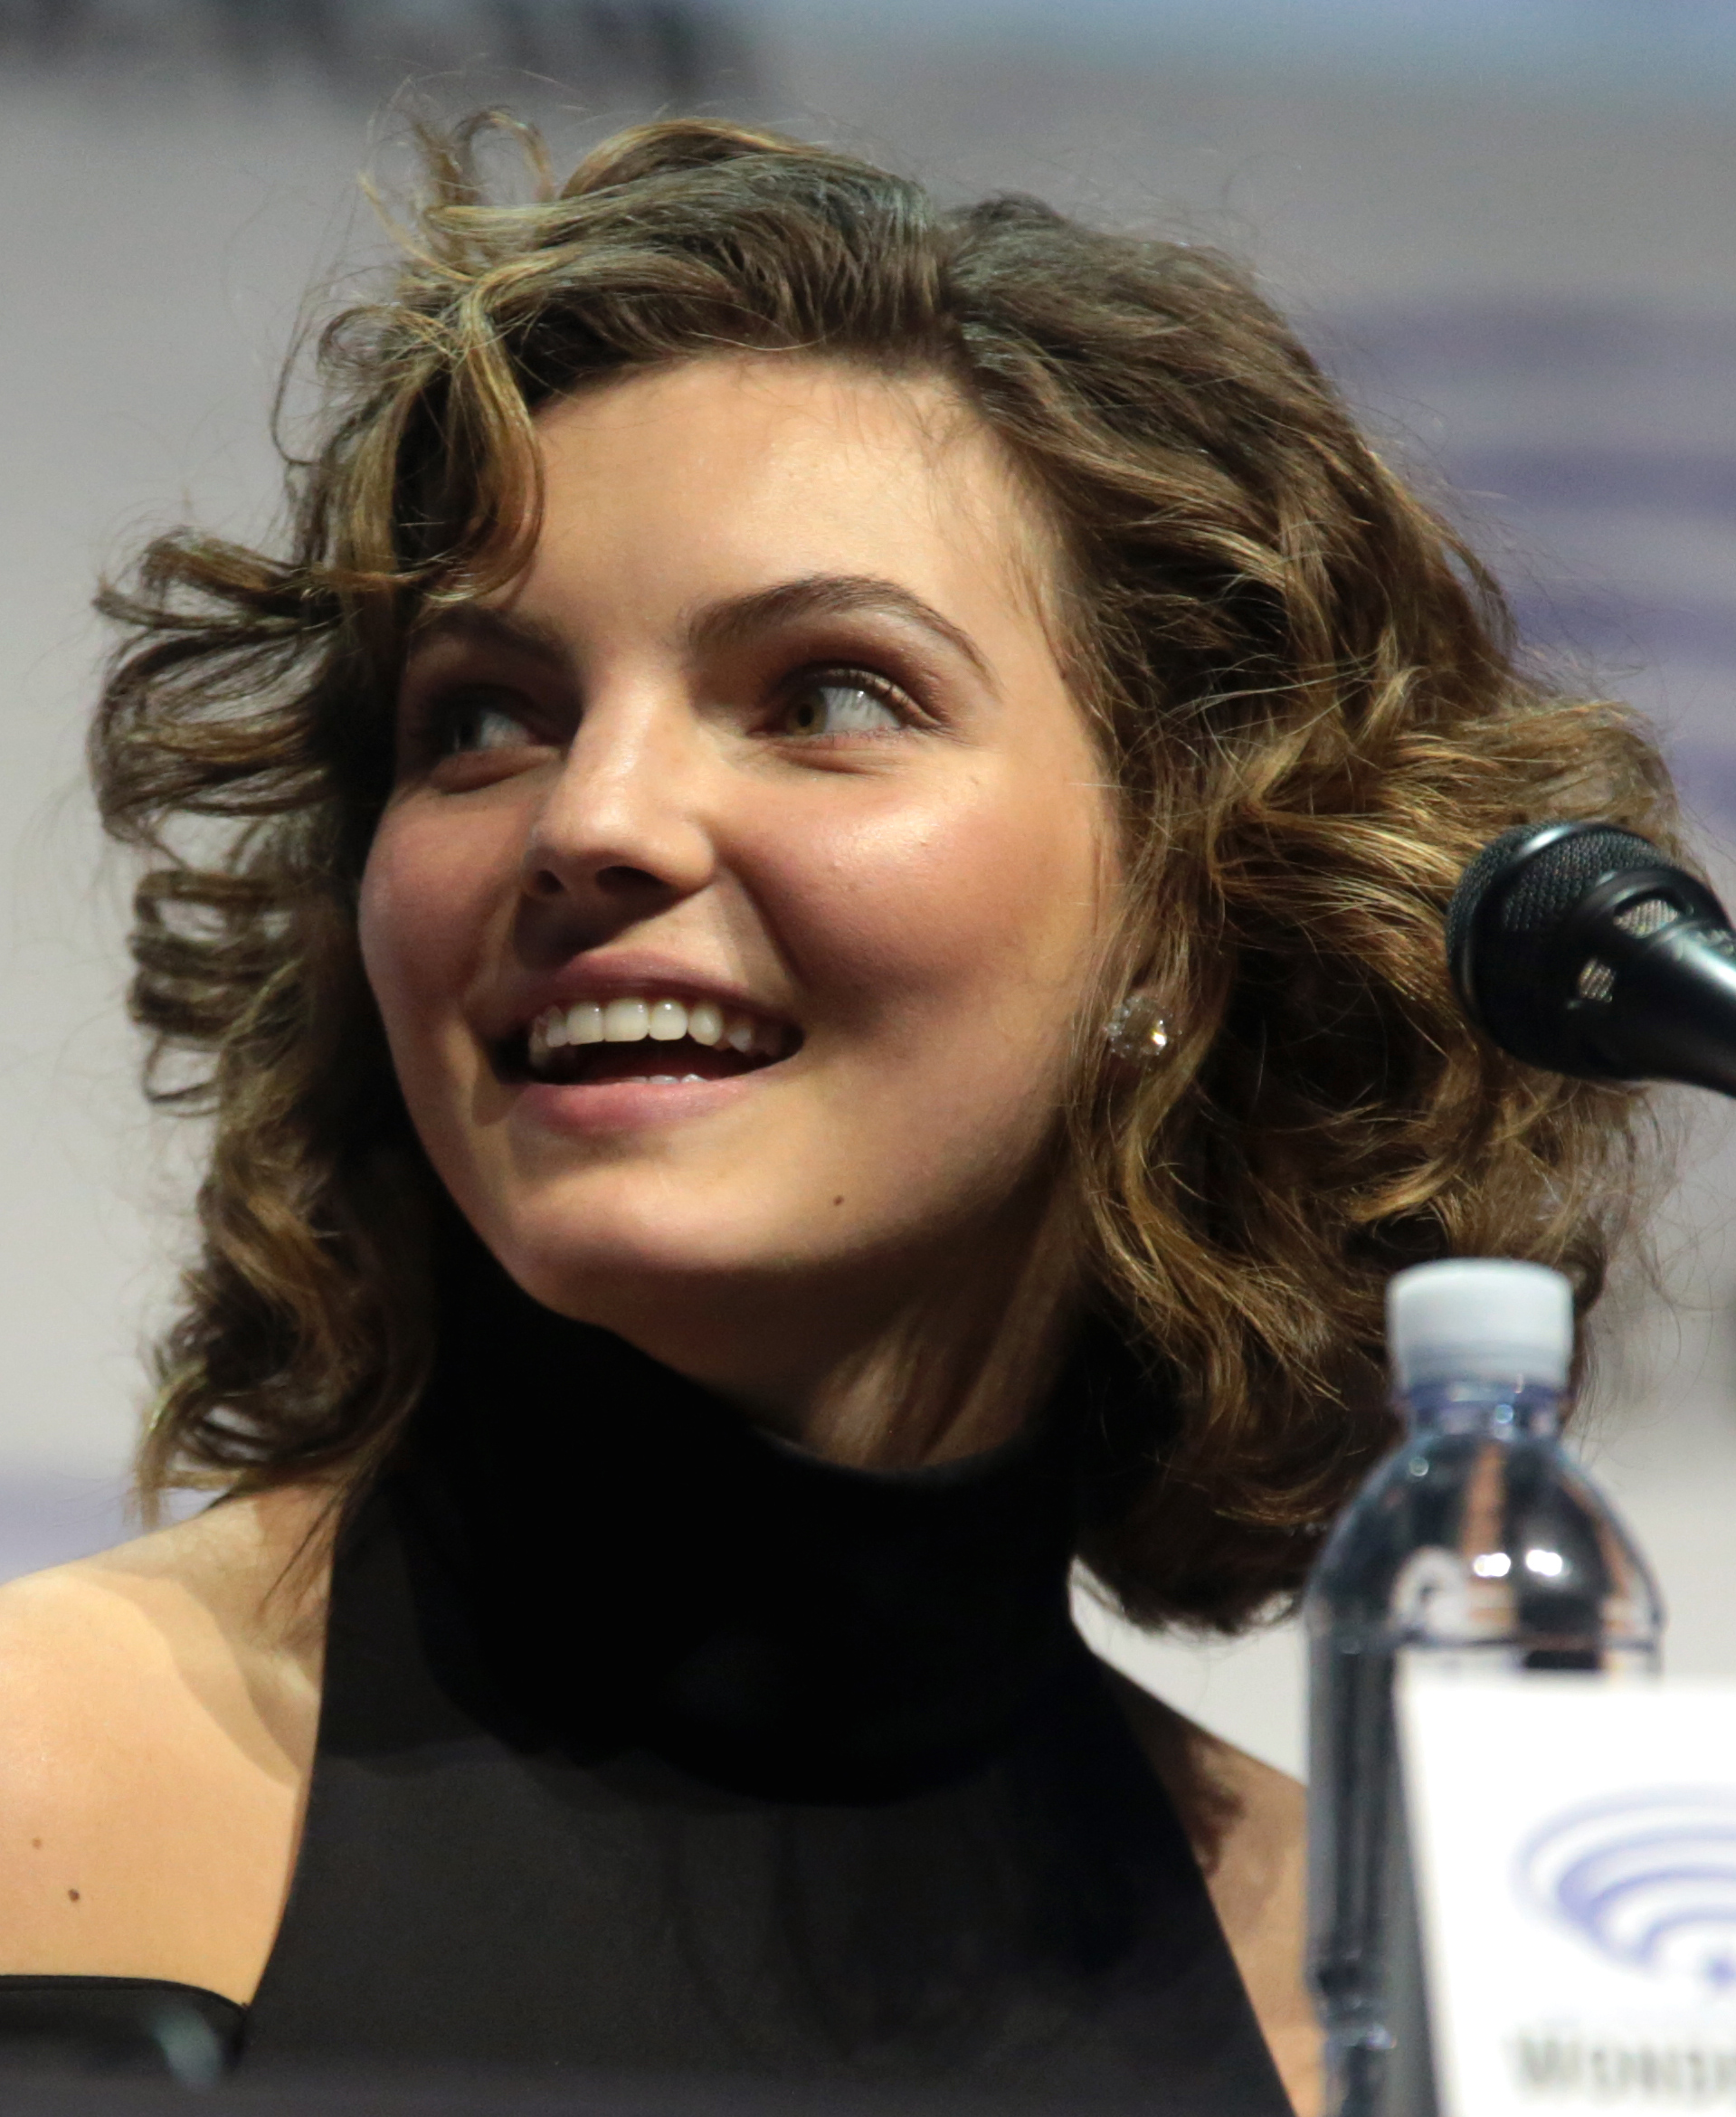 The 19-year old daughter of father Joshua Bicondova and mother Jessica Porter Camren Bicondova in 2018 photo. Camren Bicondova earned a  million dollar salary - leaving the net worth at 1 million in 2018